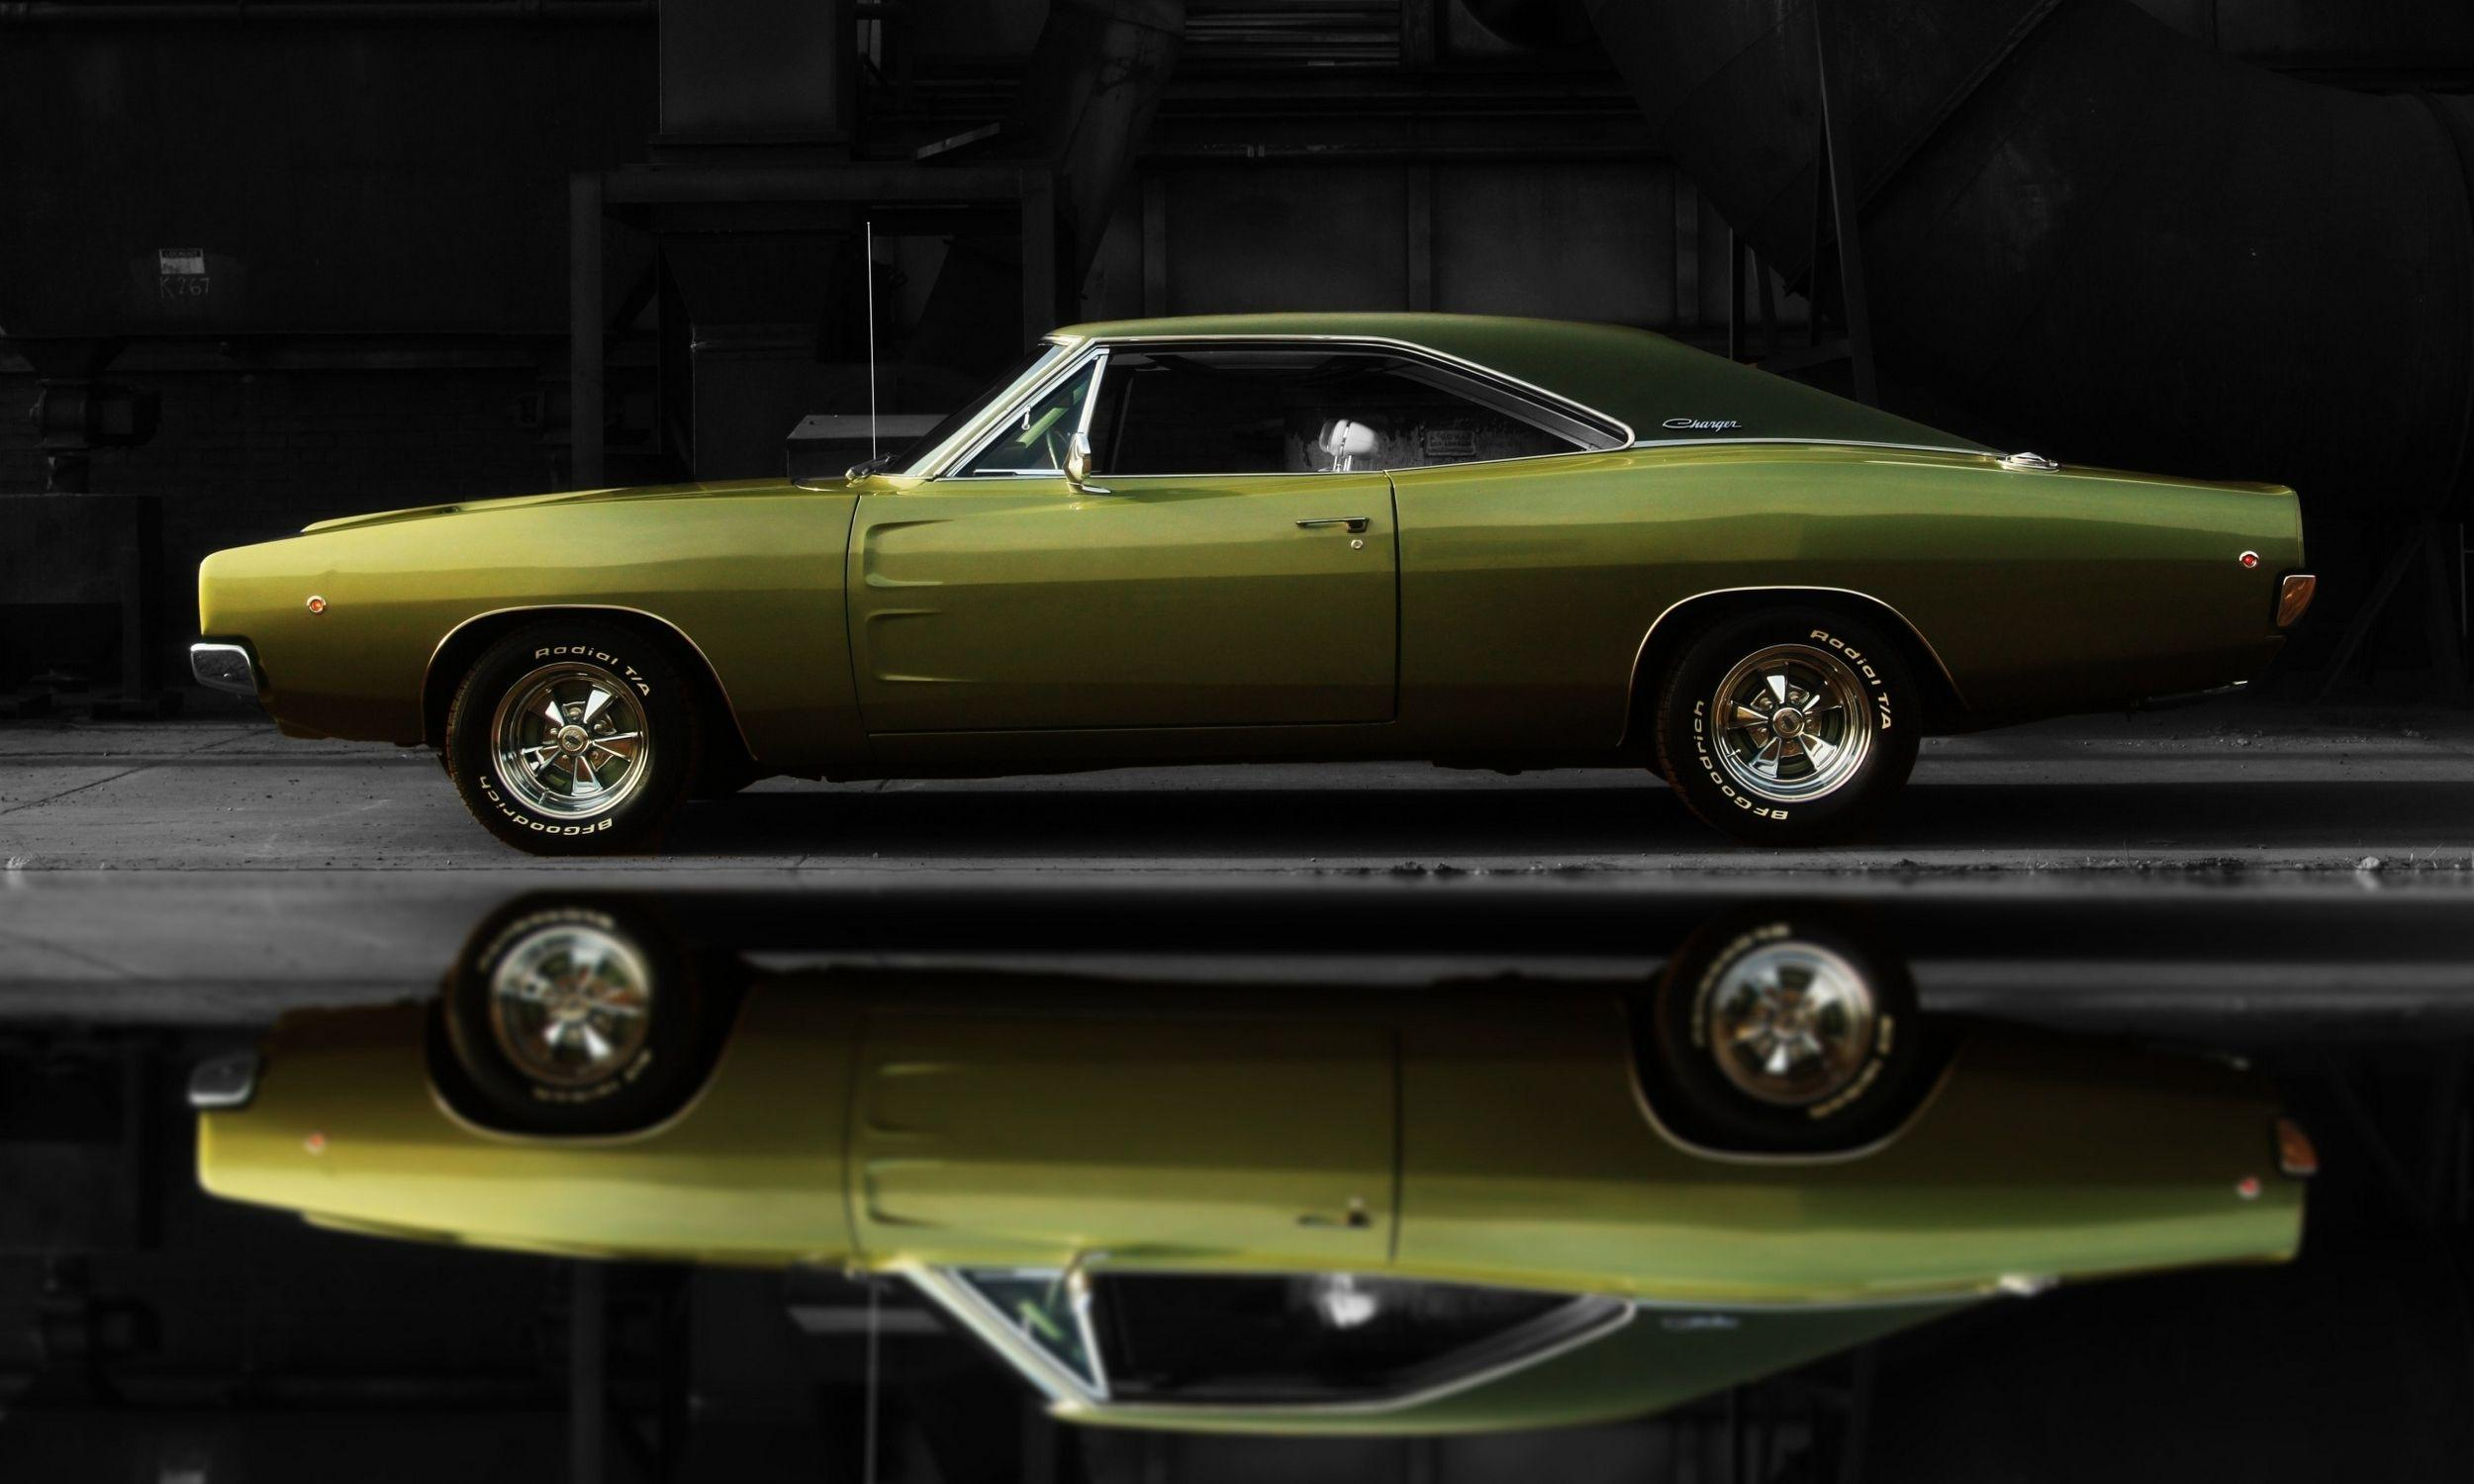 Mopar Wallpapers - Wallpaper Cave